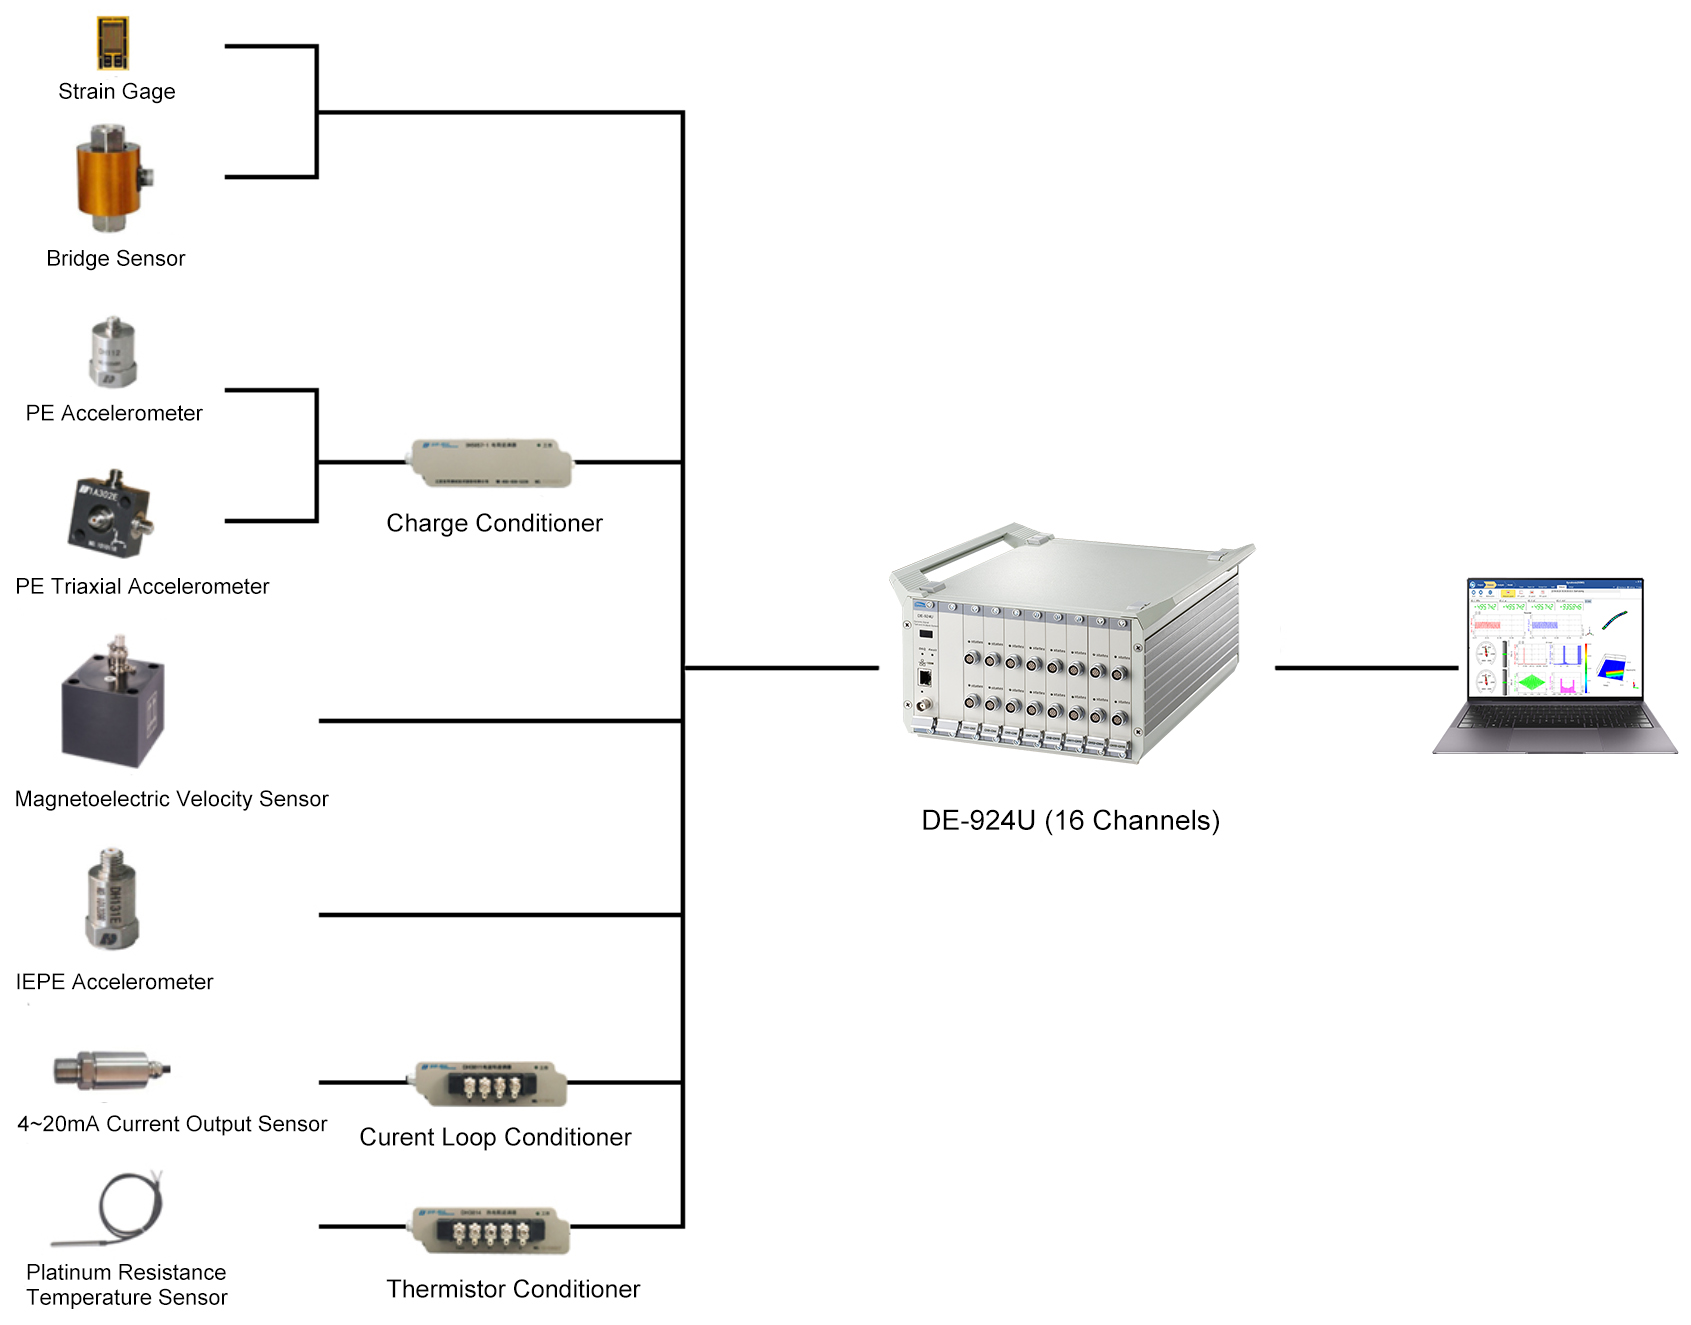 DE-924U System Block Diagram-1